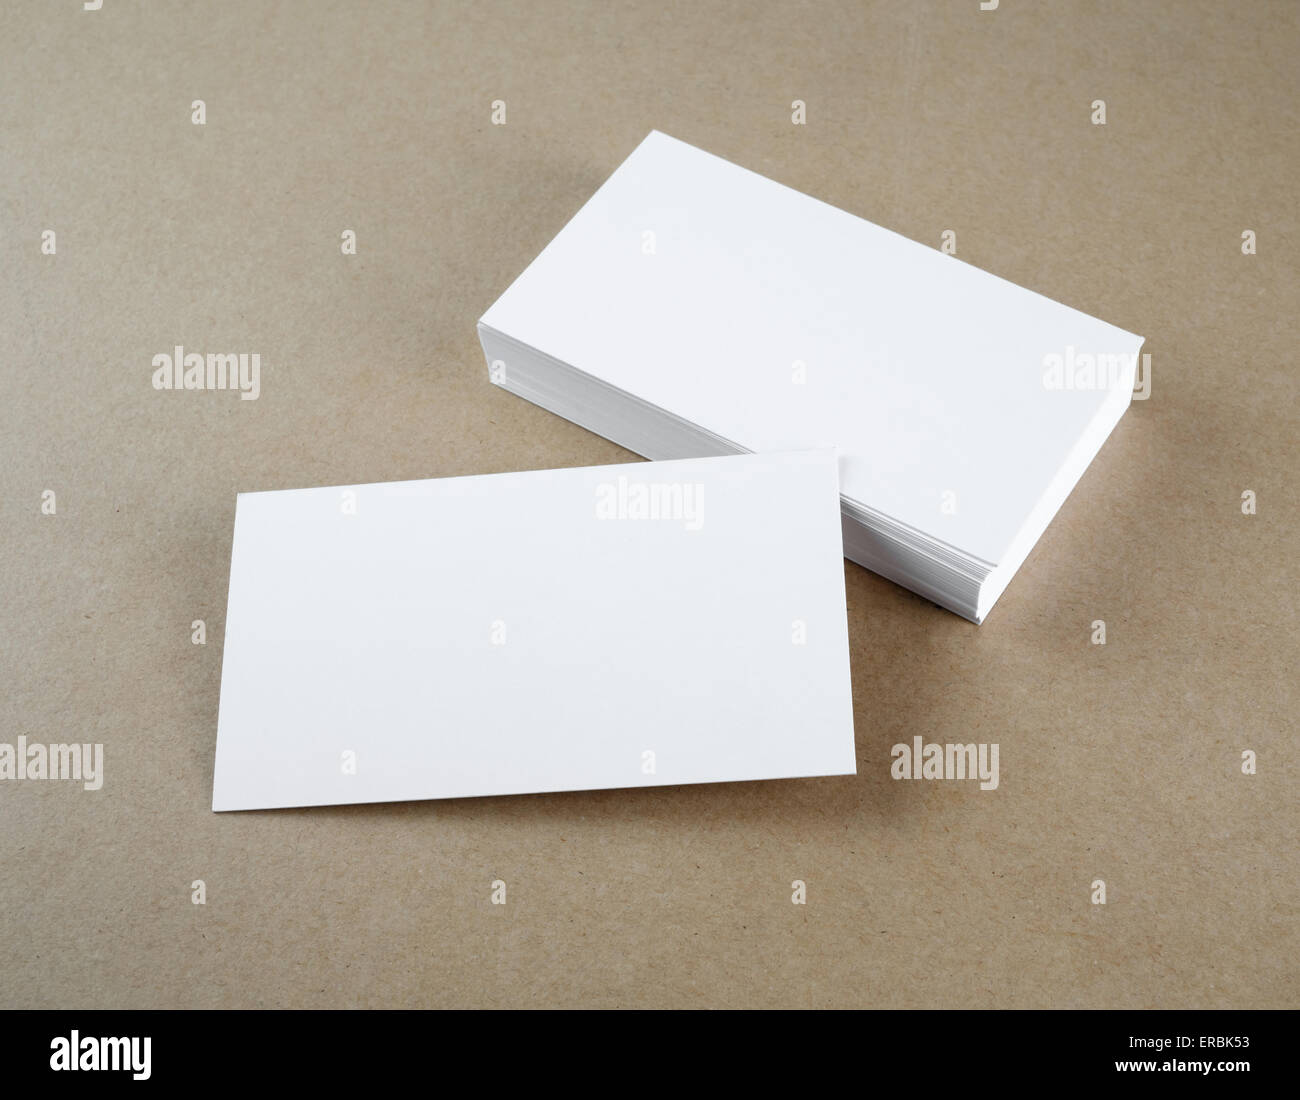 Blank business cards vatozozdevelopment blank business cards colourmoves